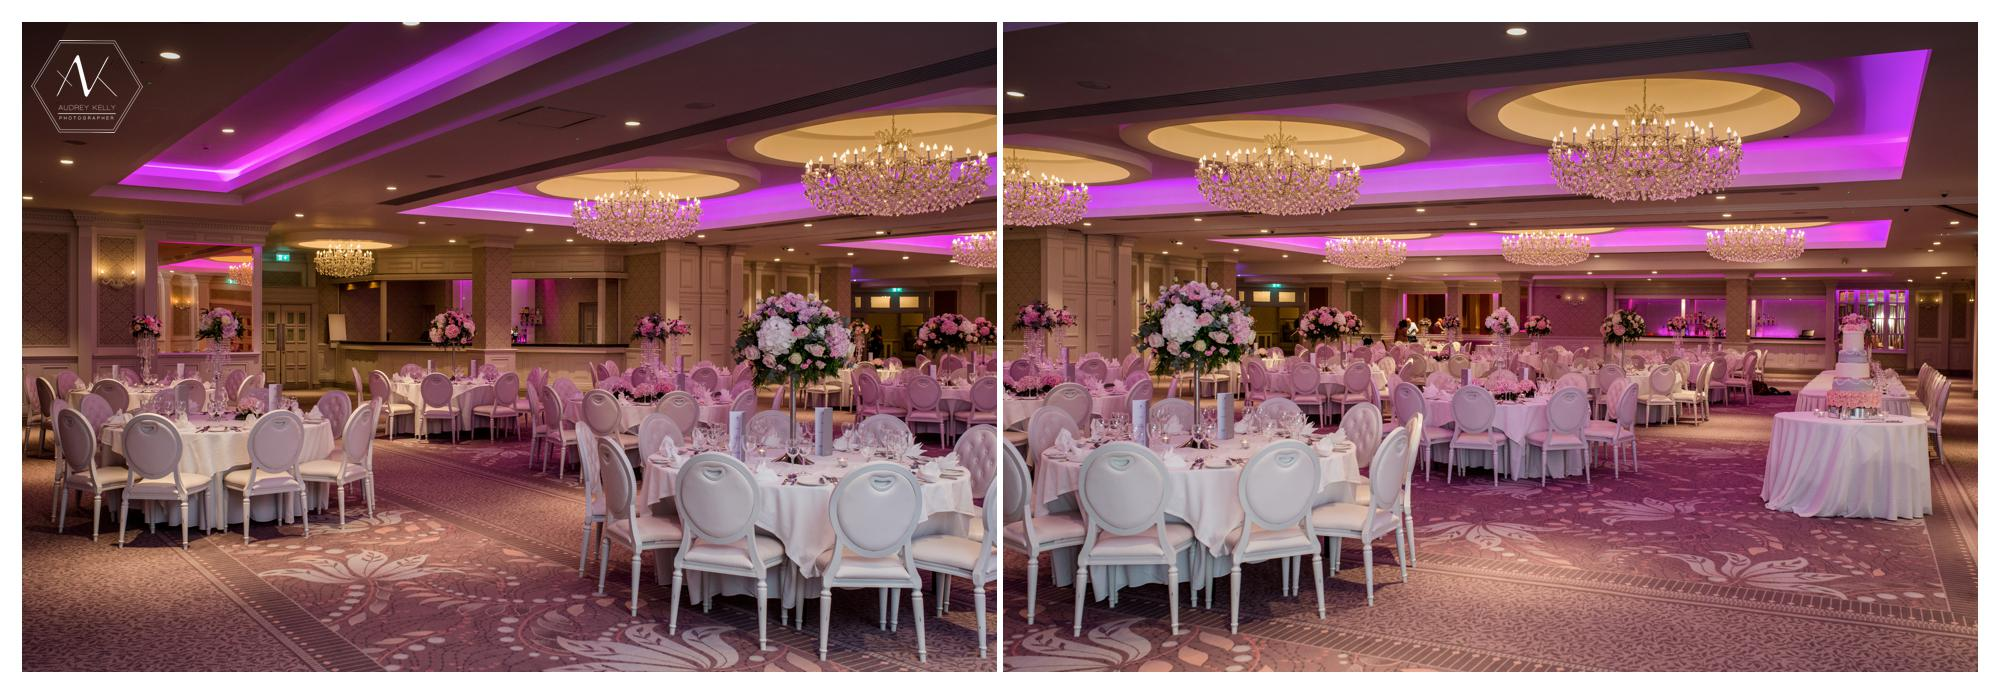 the 'pink' room is just stunning with its romantic lighting, elegant table settings and warm tones